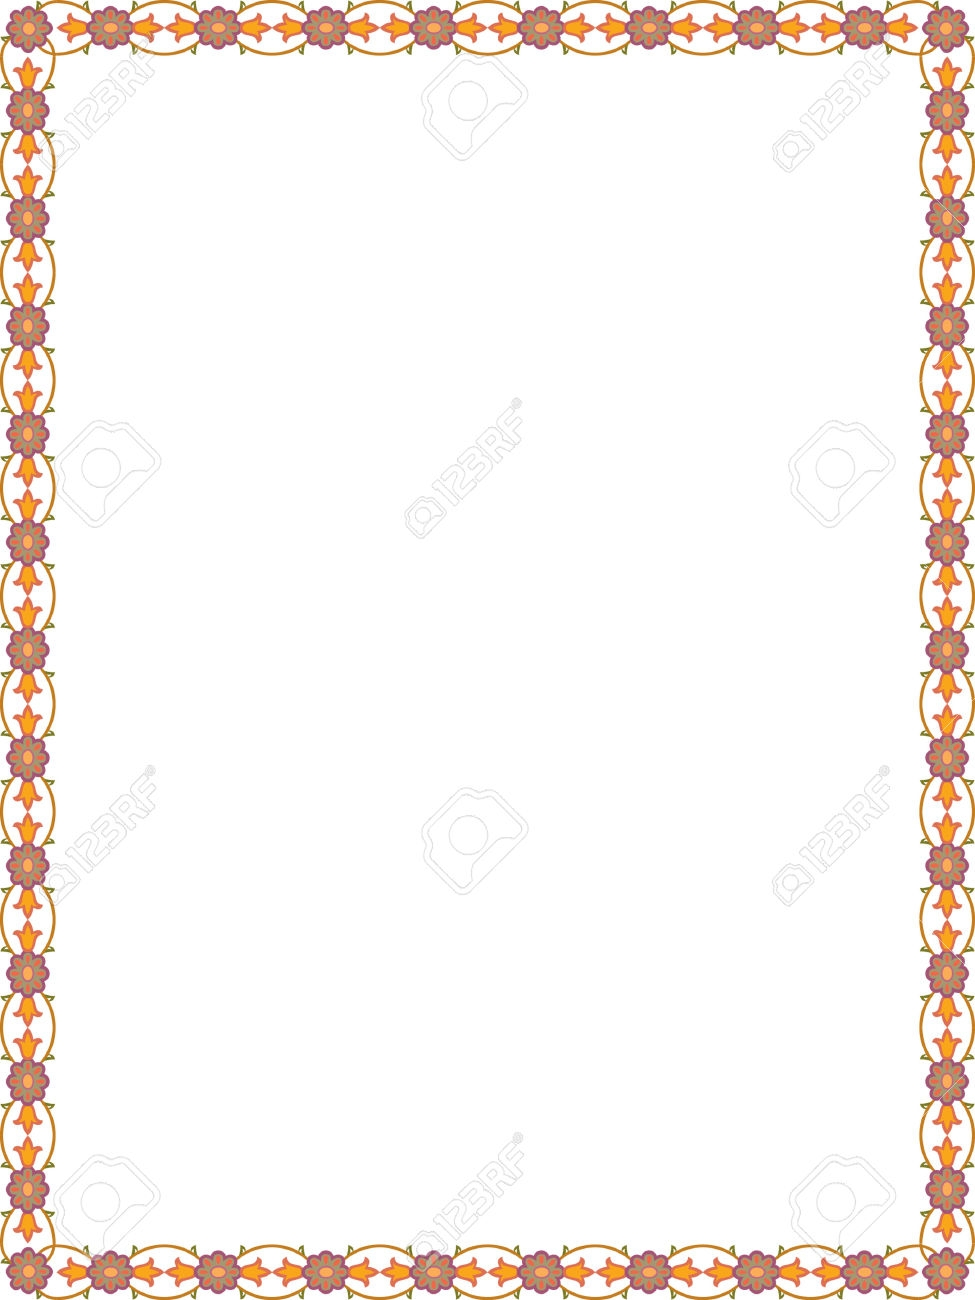 simple color border clipart - Clipground